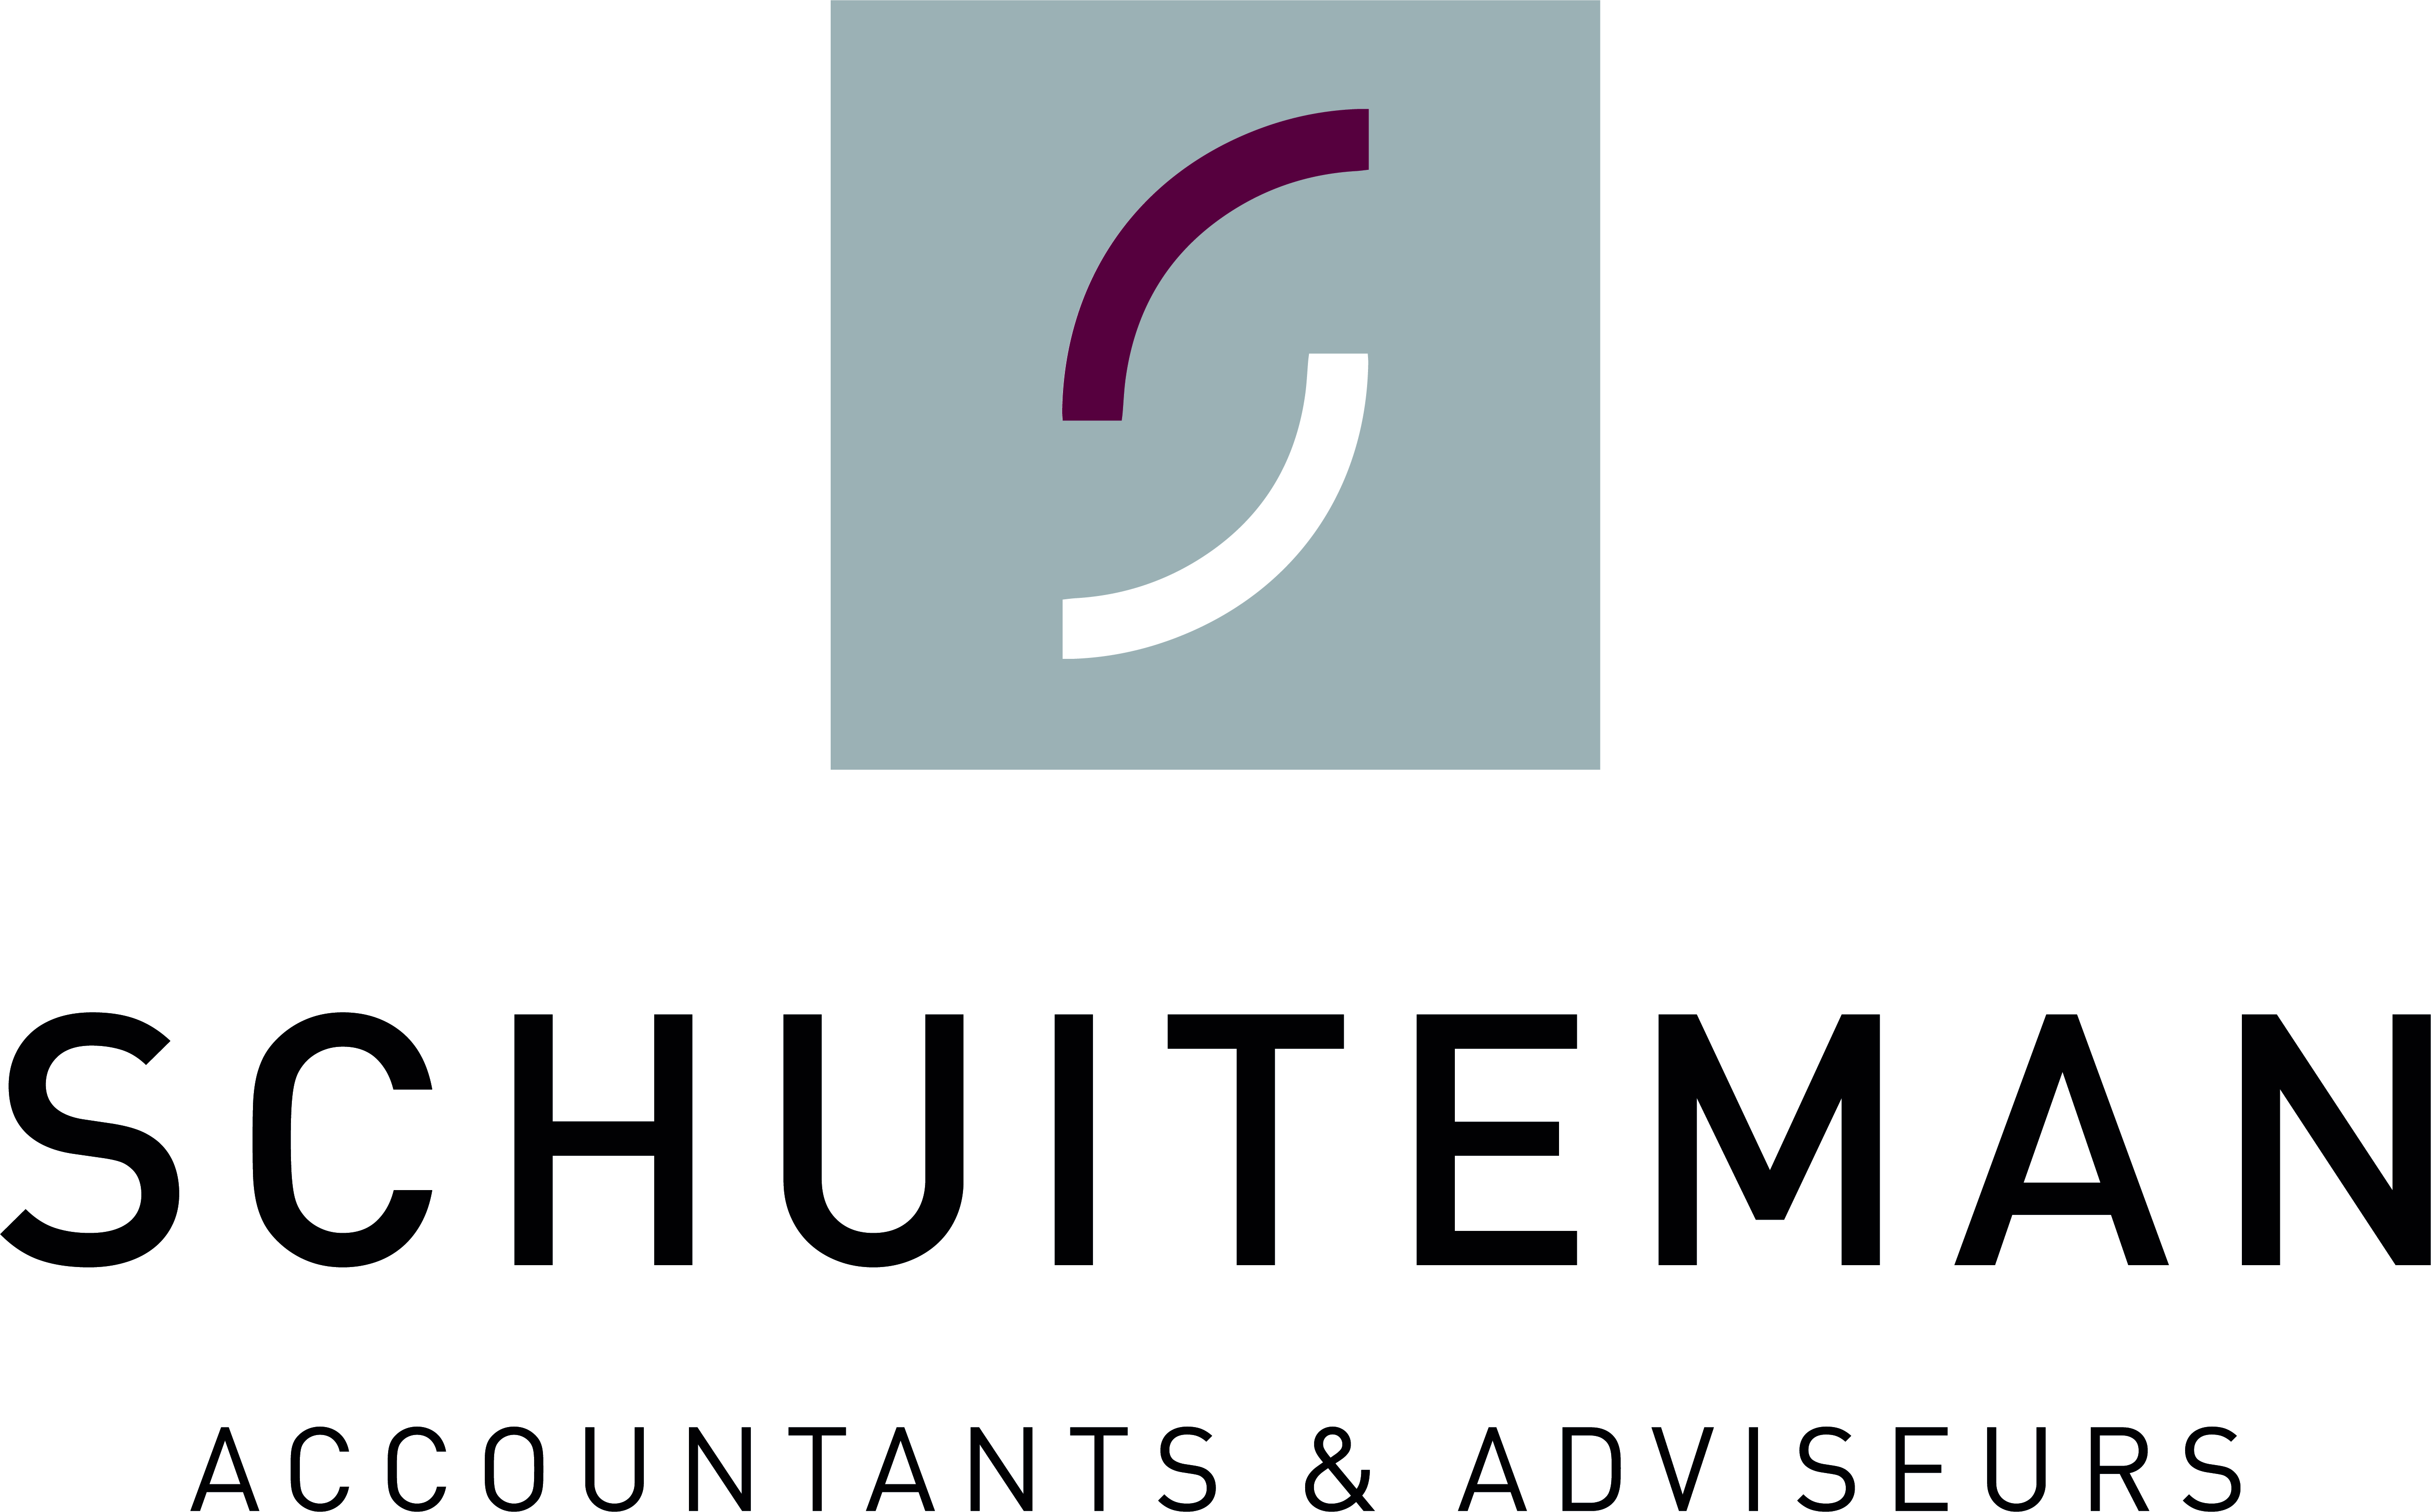 Schuiteman Accountants & Adviseurs